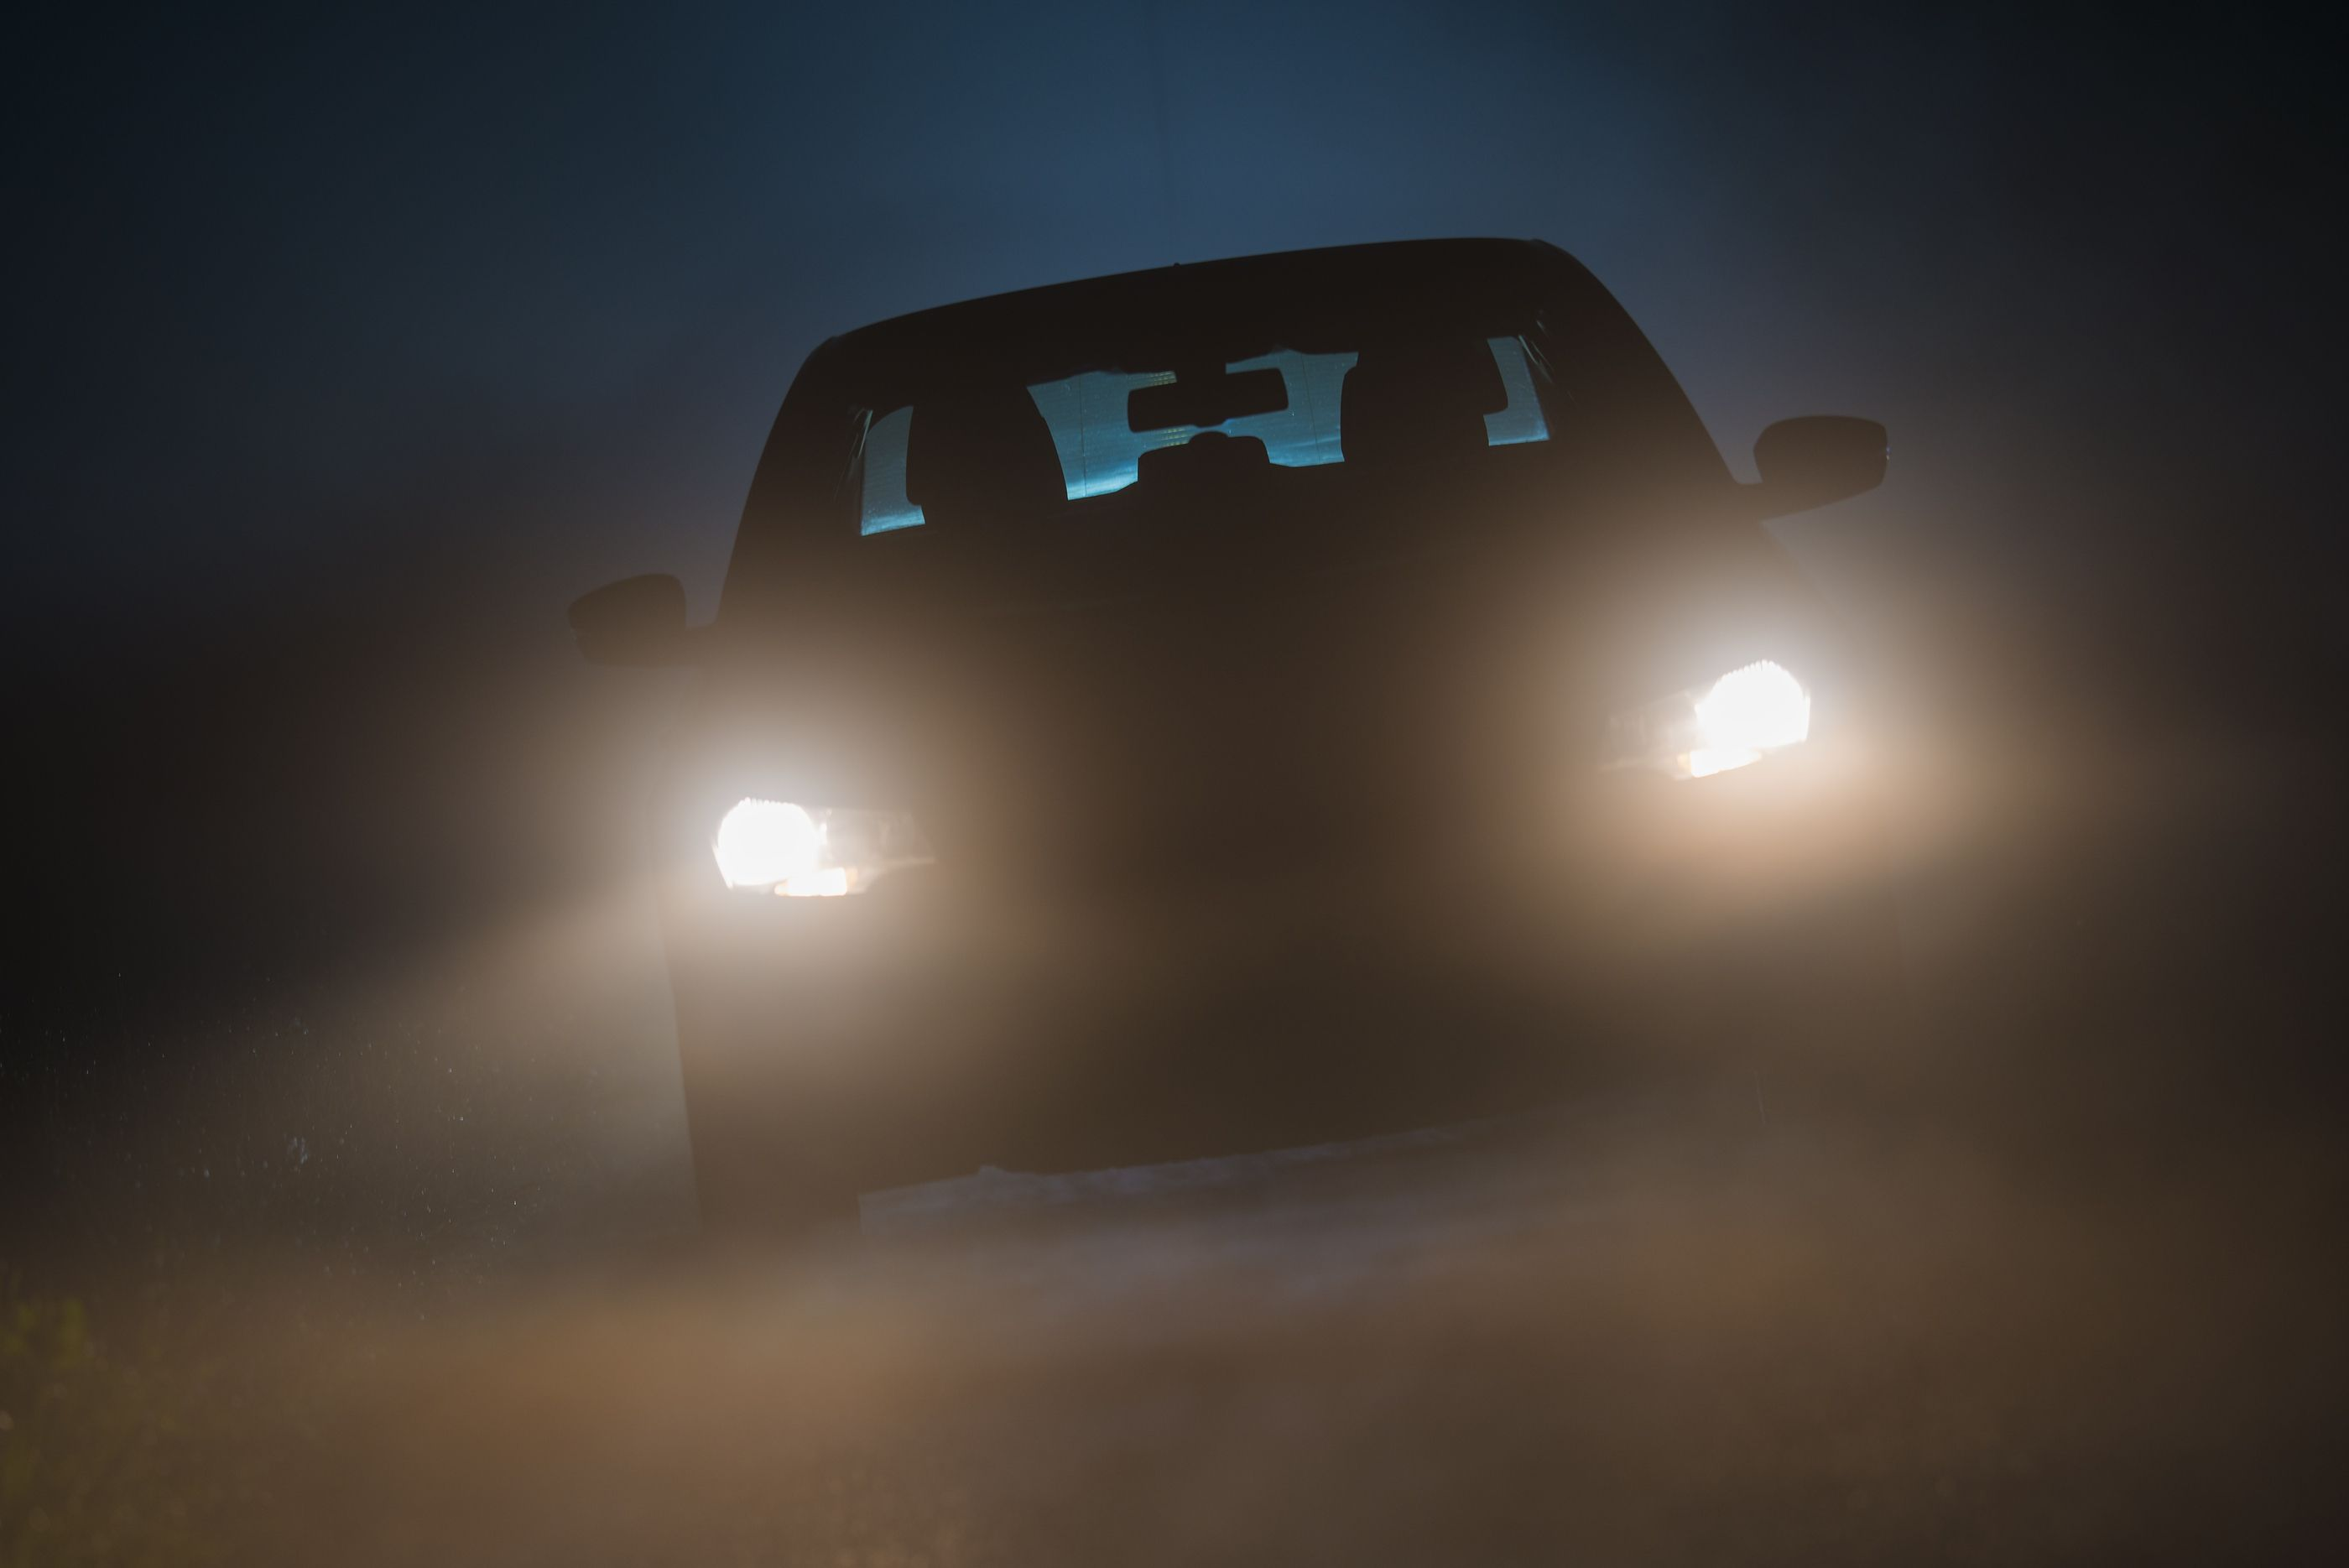 Car driving down a misty rural road with its headlights on